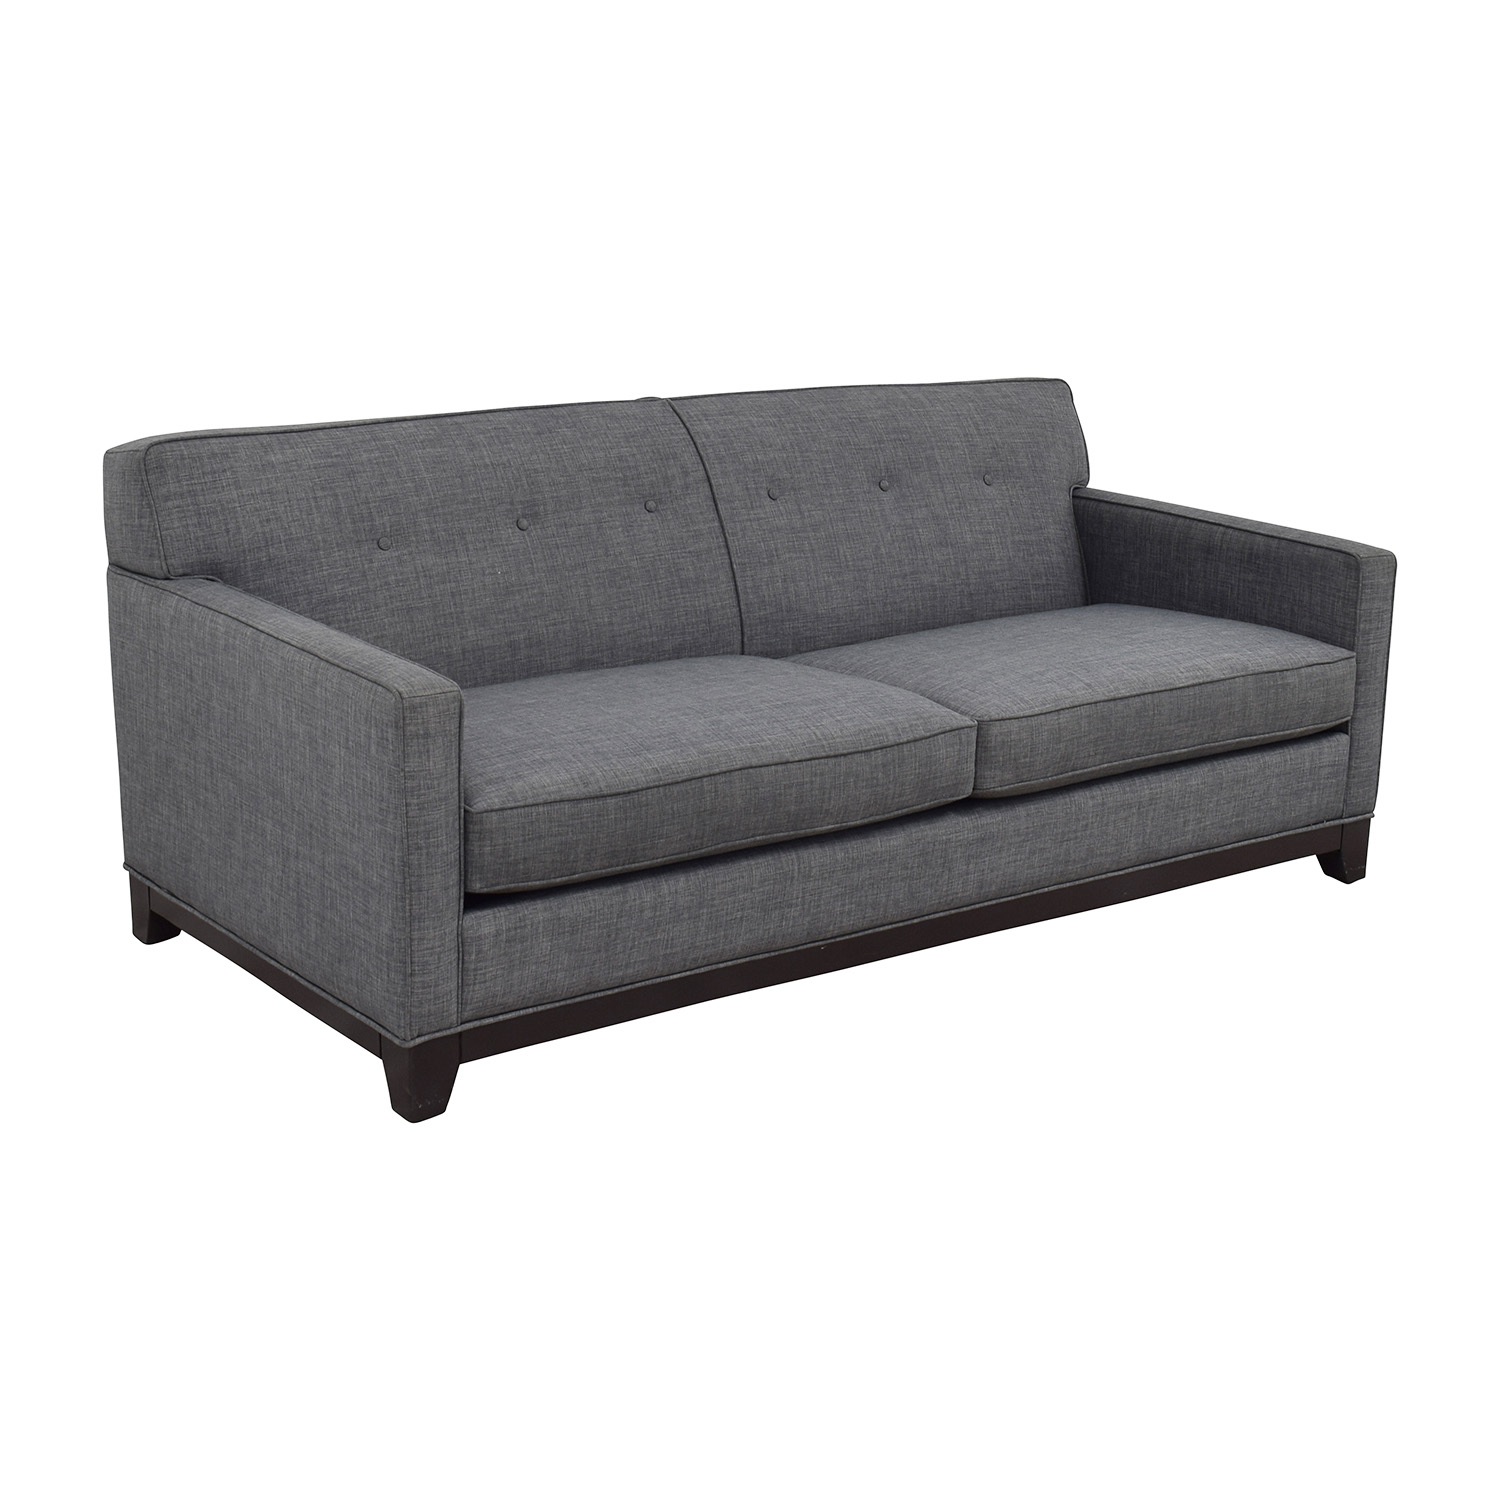 raymour and flanigan sofas dfs sequence sofa brokeasshome 30368